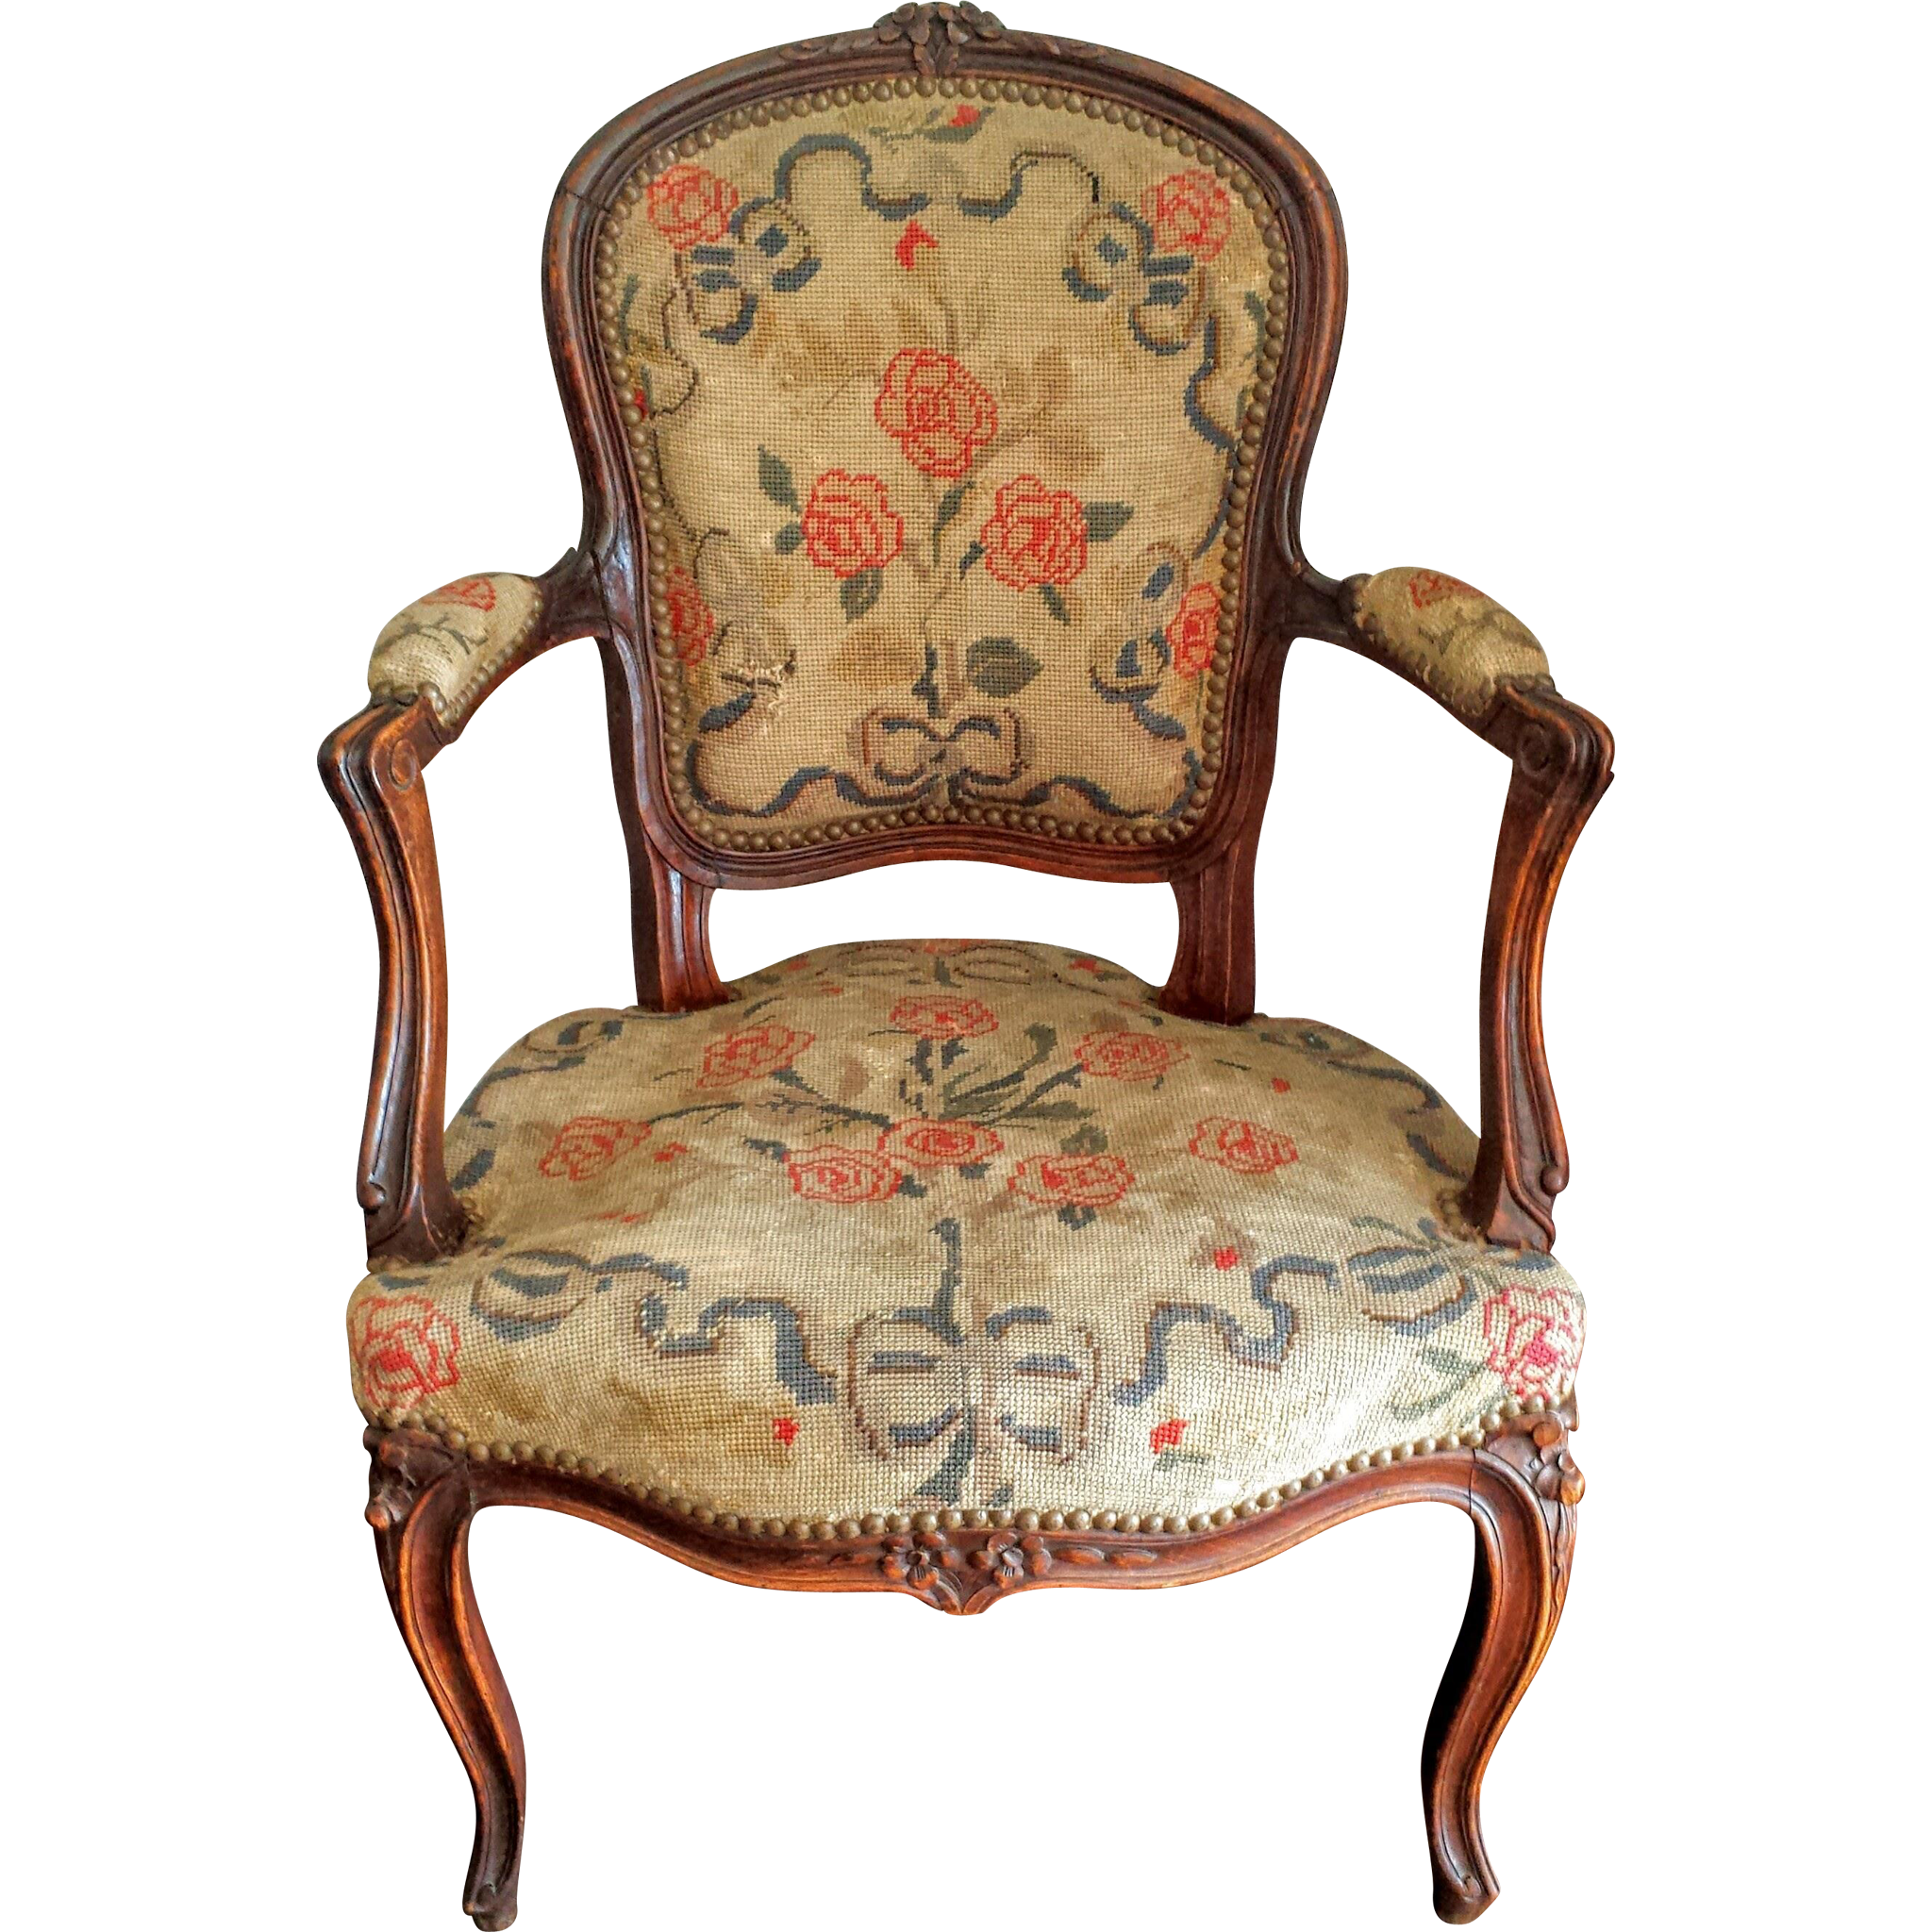 Antique French Louis XV Style Needlepoint Fauteil Chair